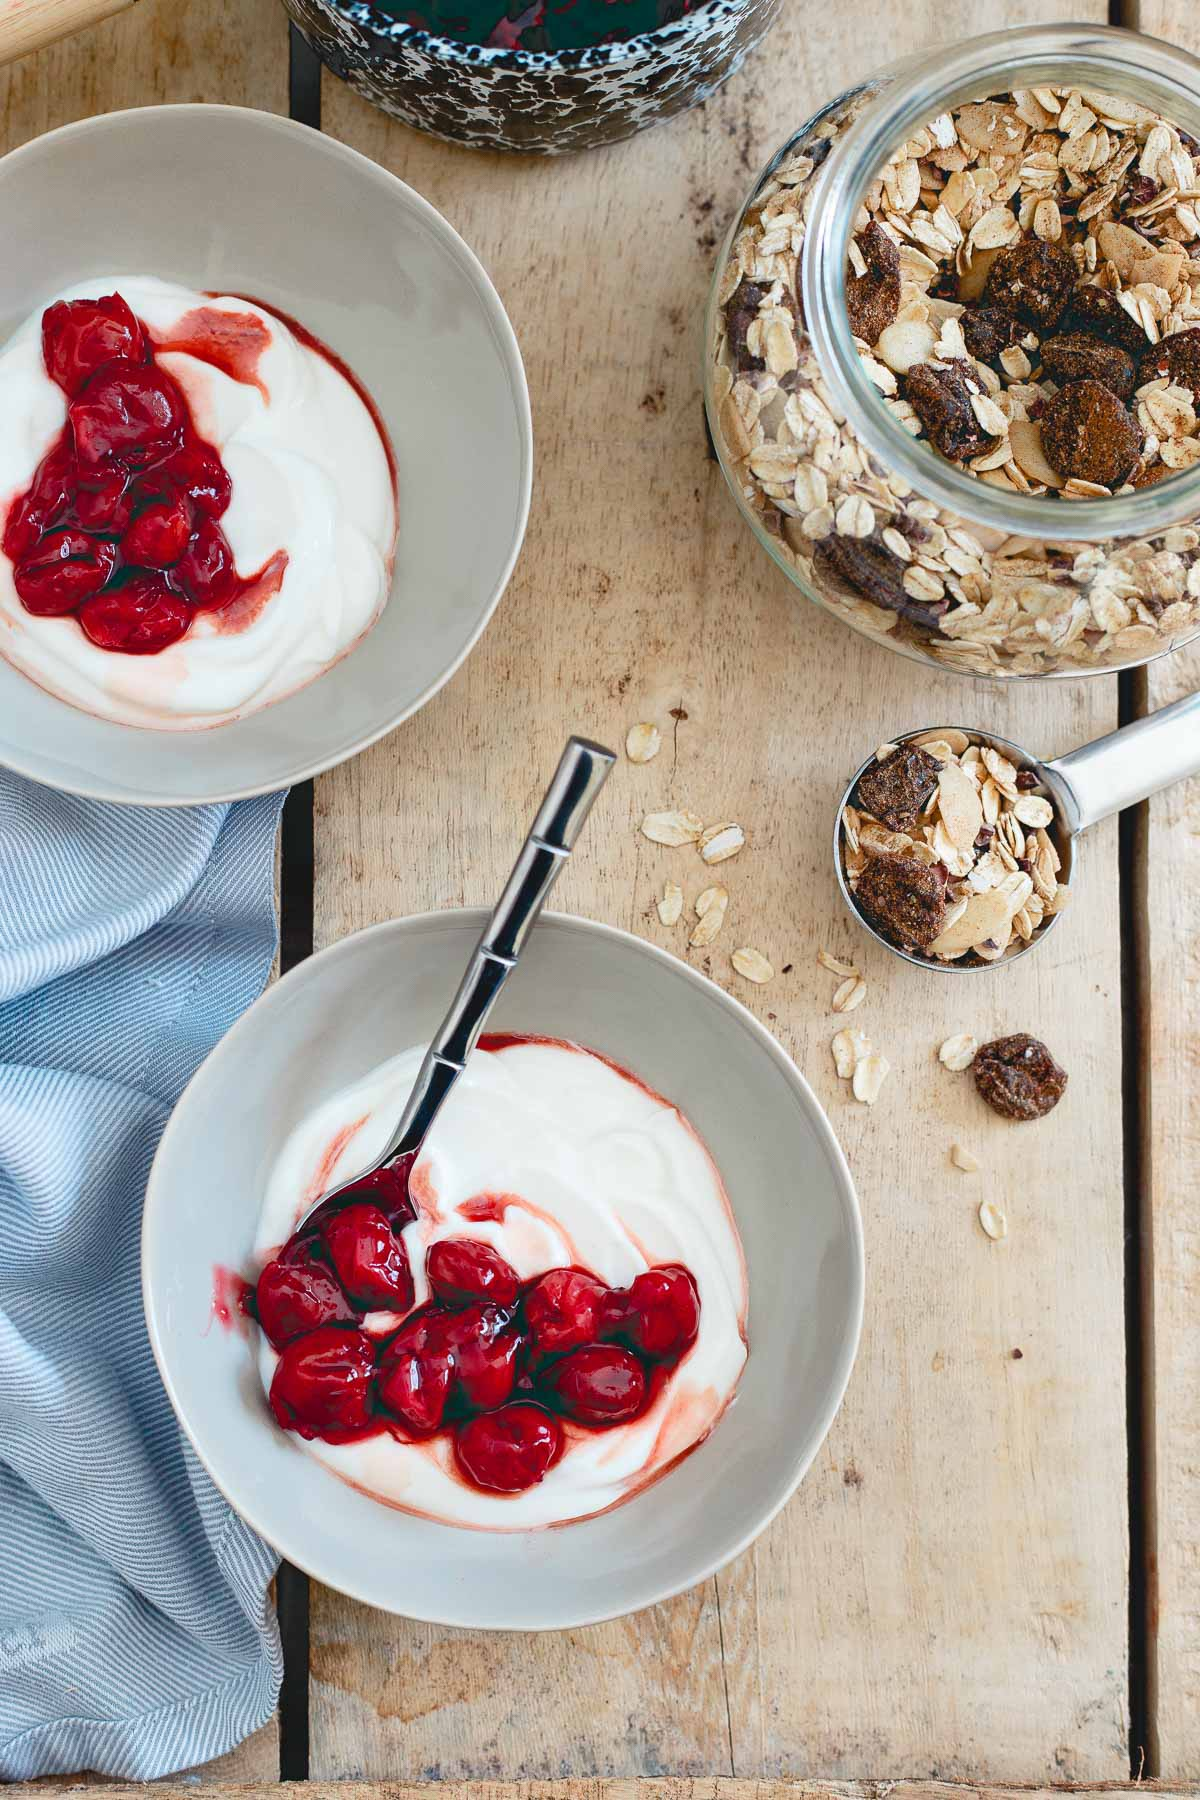 Enjoy this tart cherry ginger muesli over cherry swirled yogurt bowls for an easy, nutritious breakfast.